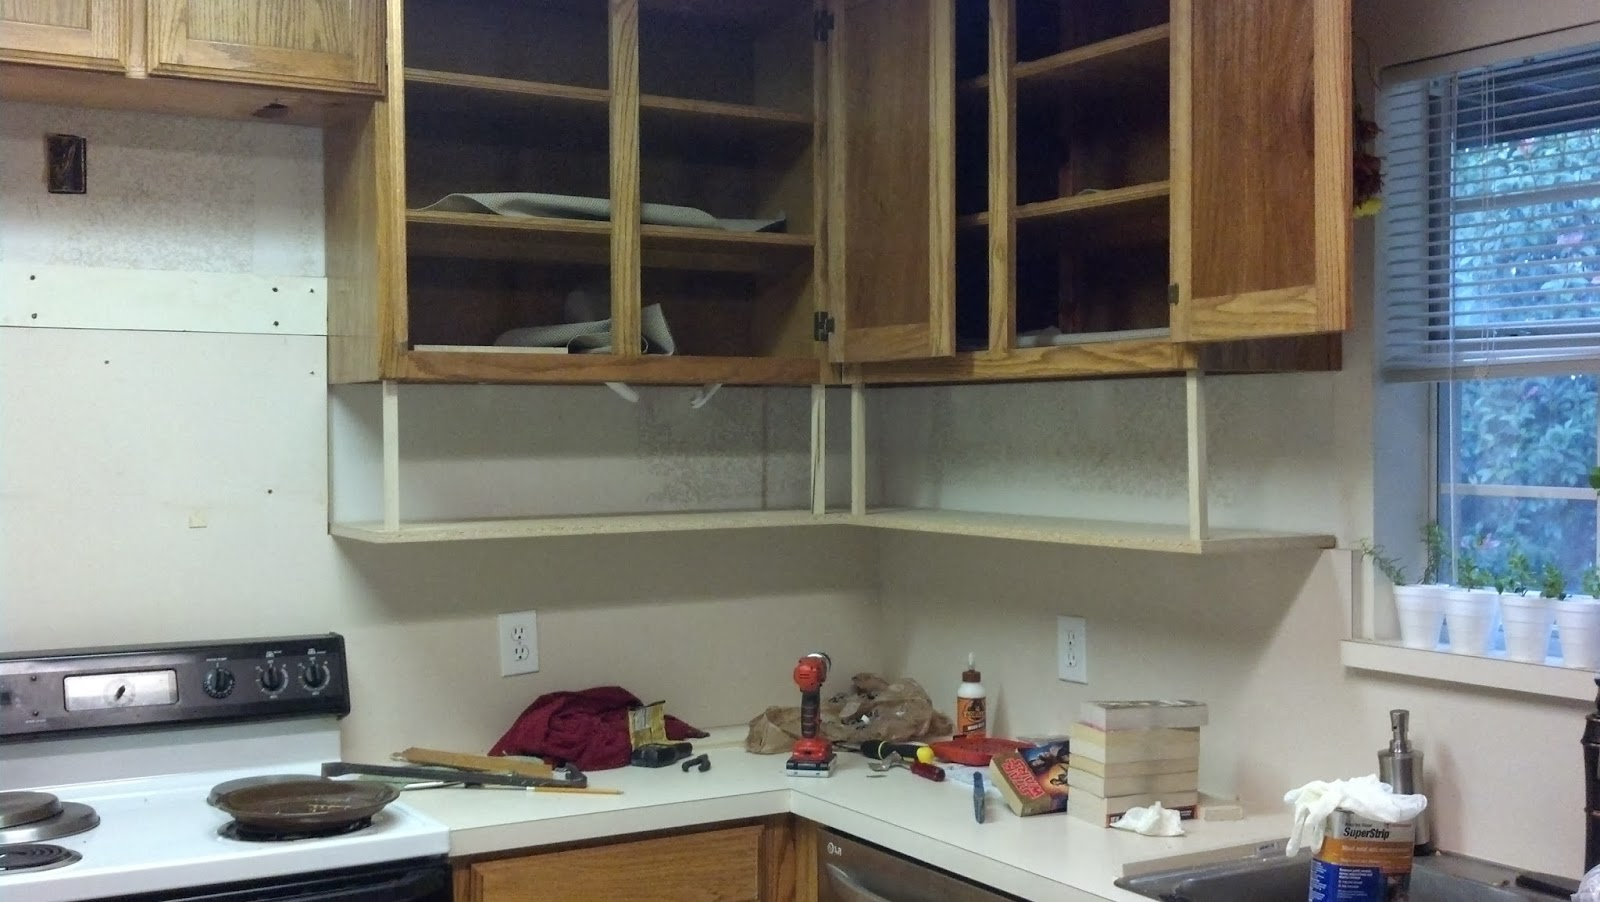 Fix lovely how to build shelves under your kitchen cabinets for Caulking around kitchen cabinets